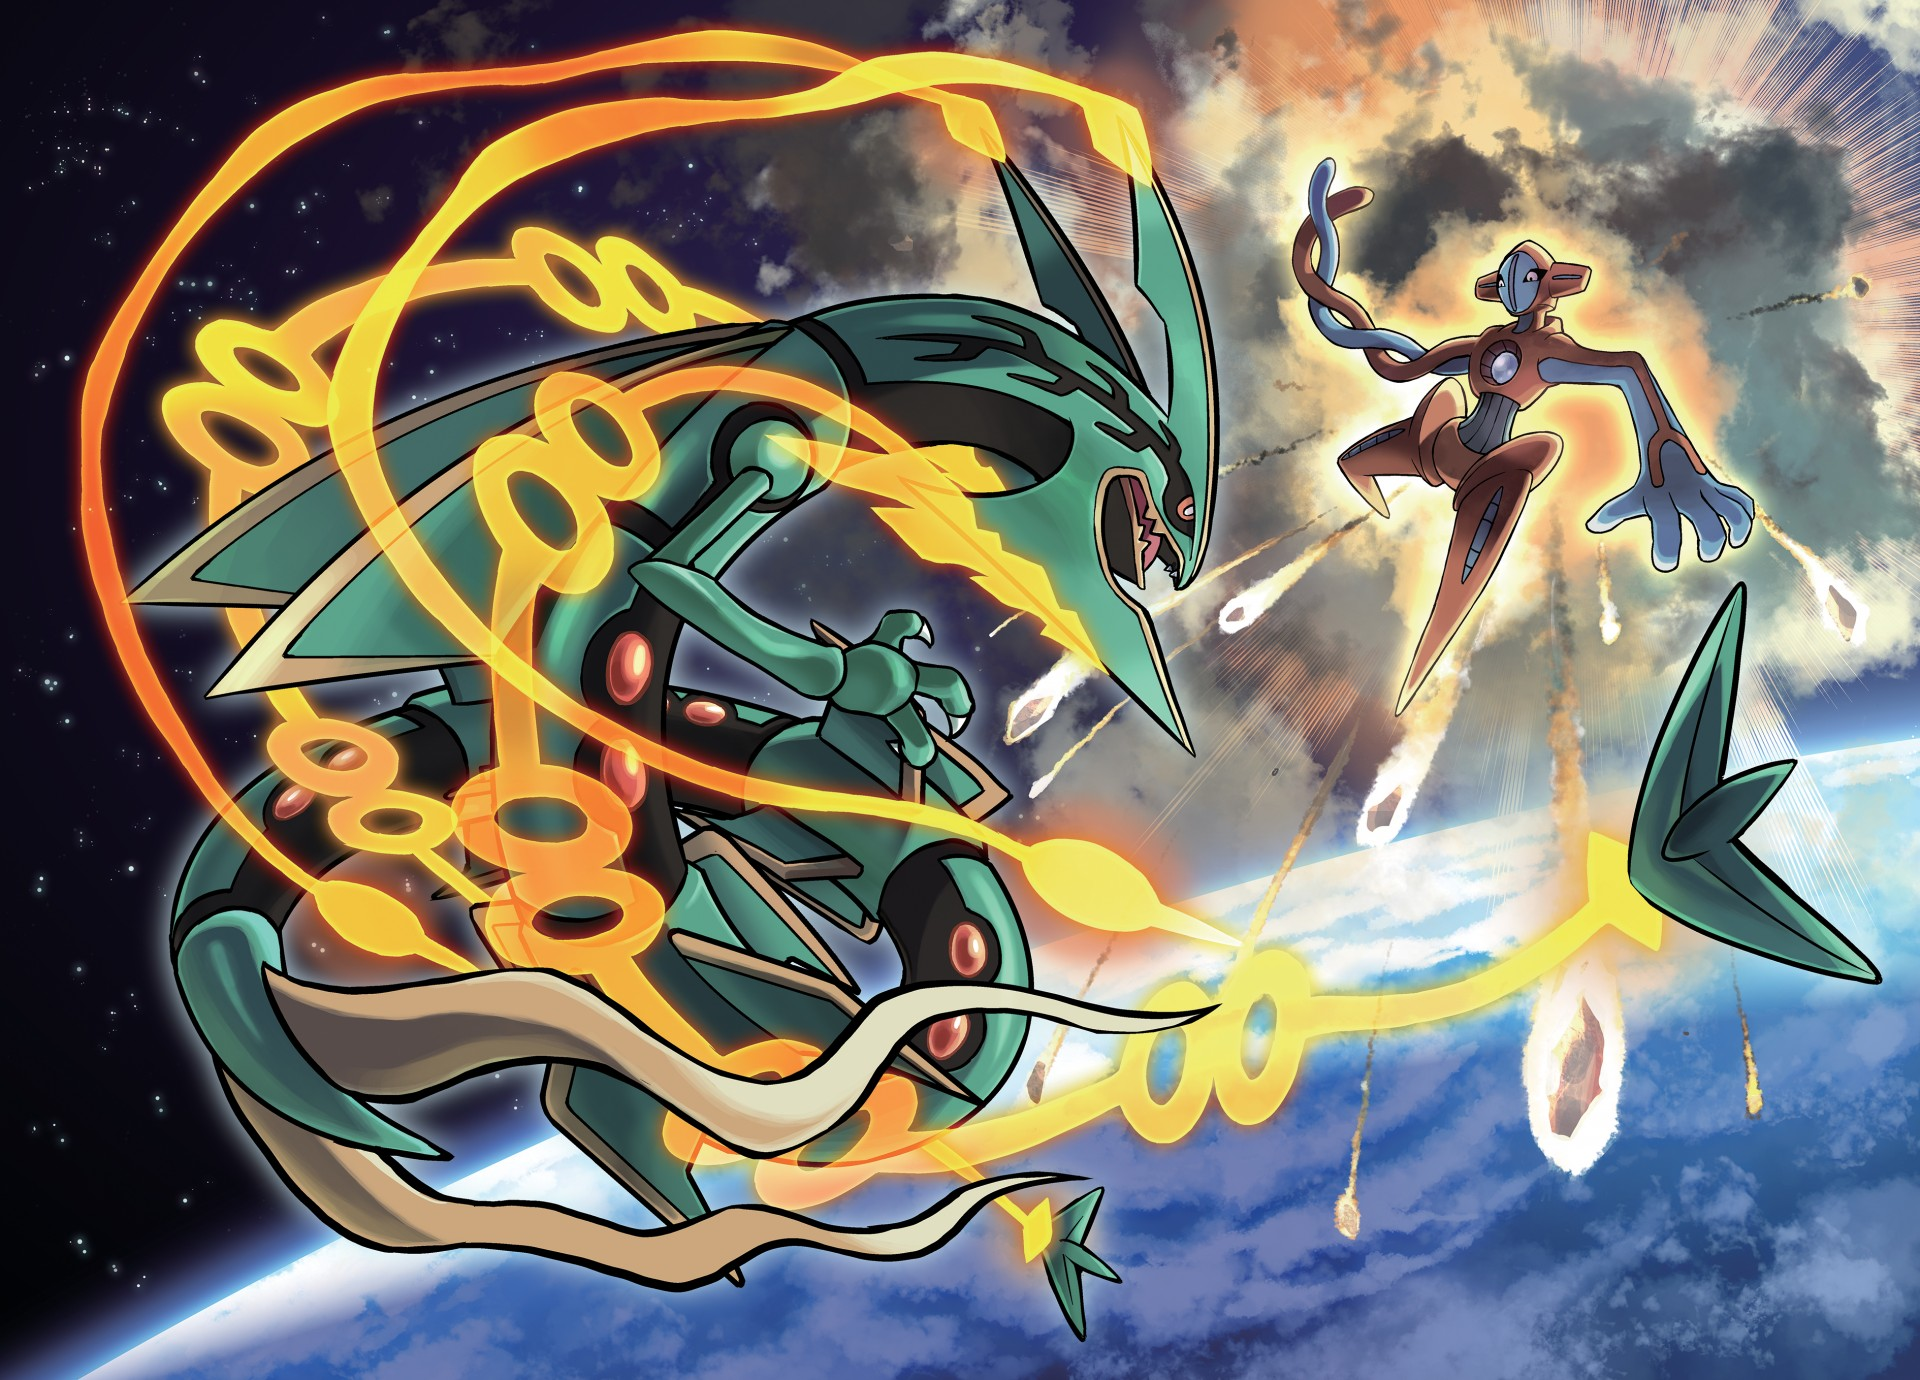 Deoxys Vs Rayquaza The Delta Episode Announced For Pokemon